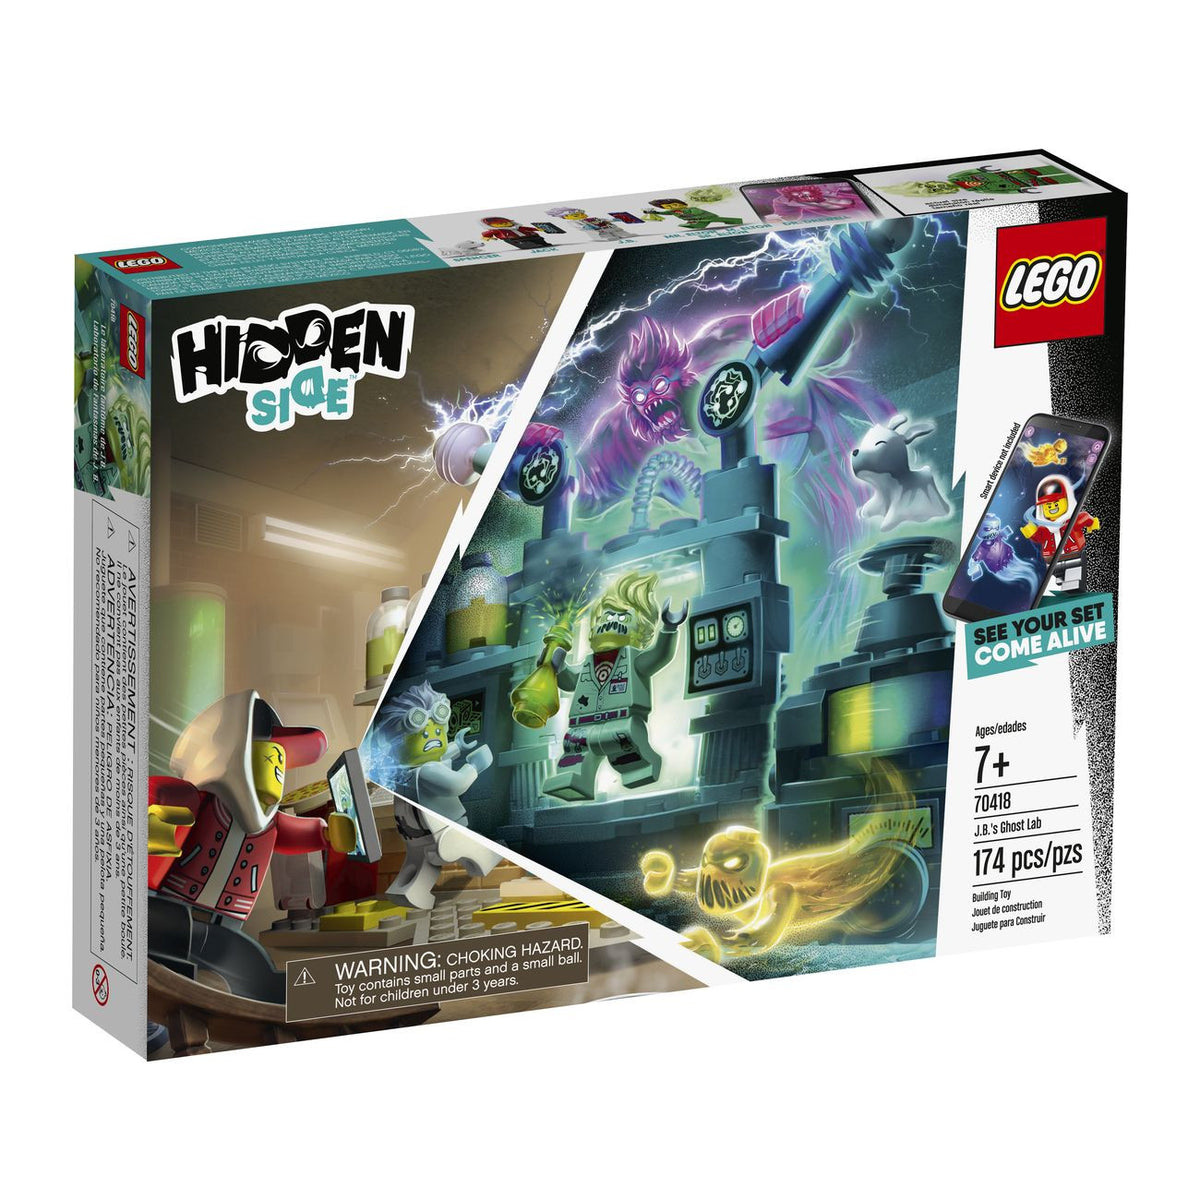 LEGO 70418 HIDDEN SIDE JBS GHOST LAB